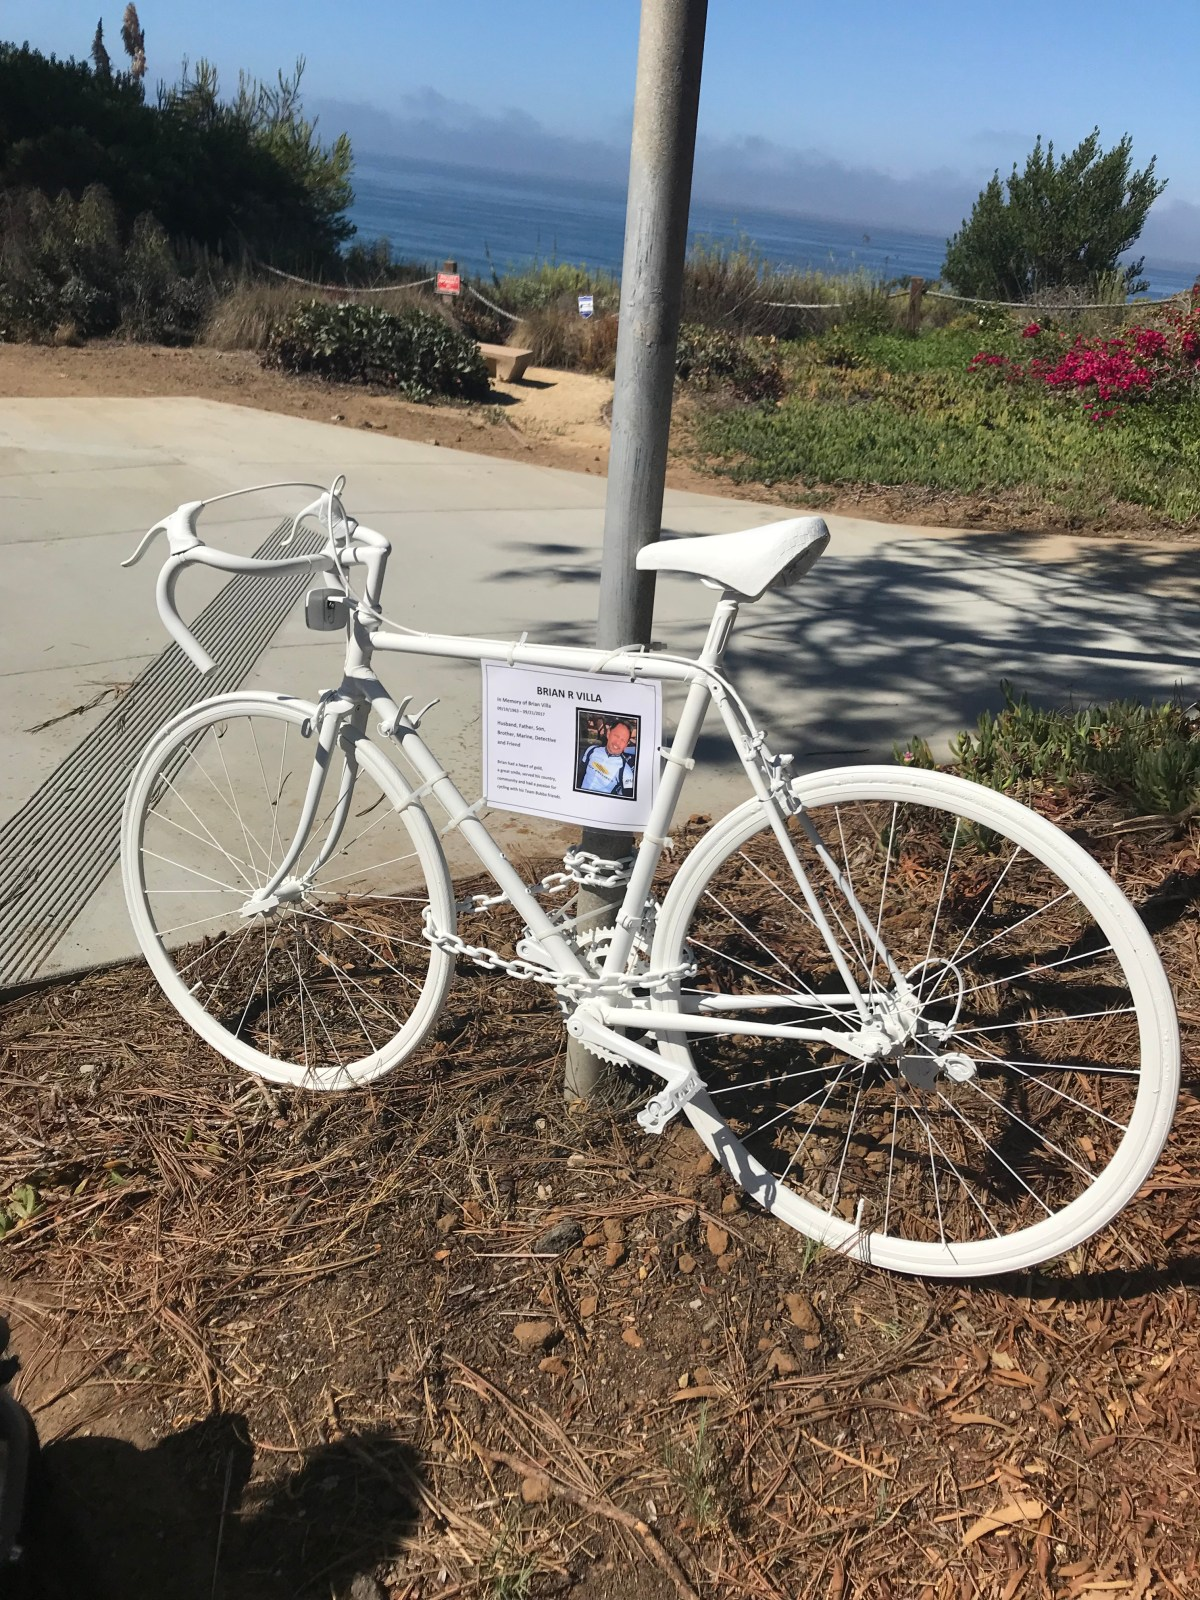 White Bike Memorial in Del Mar for LA Detective Brian R Villa